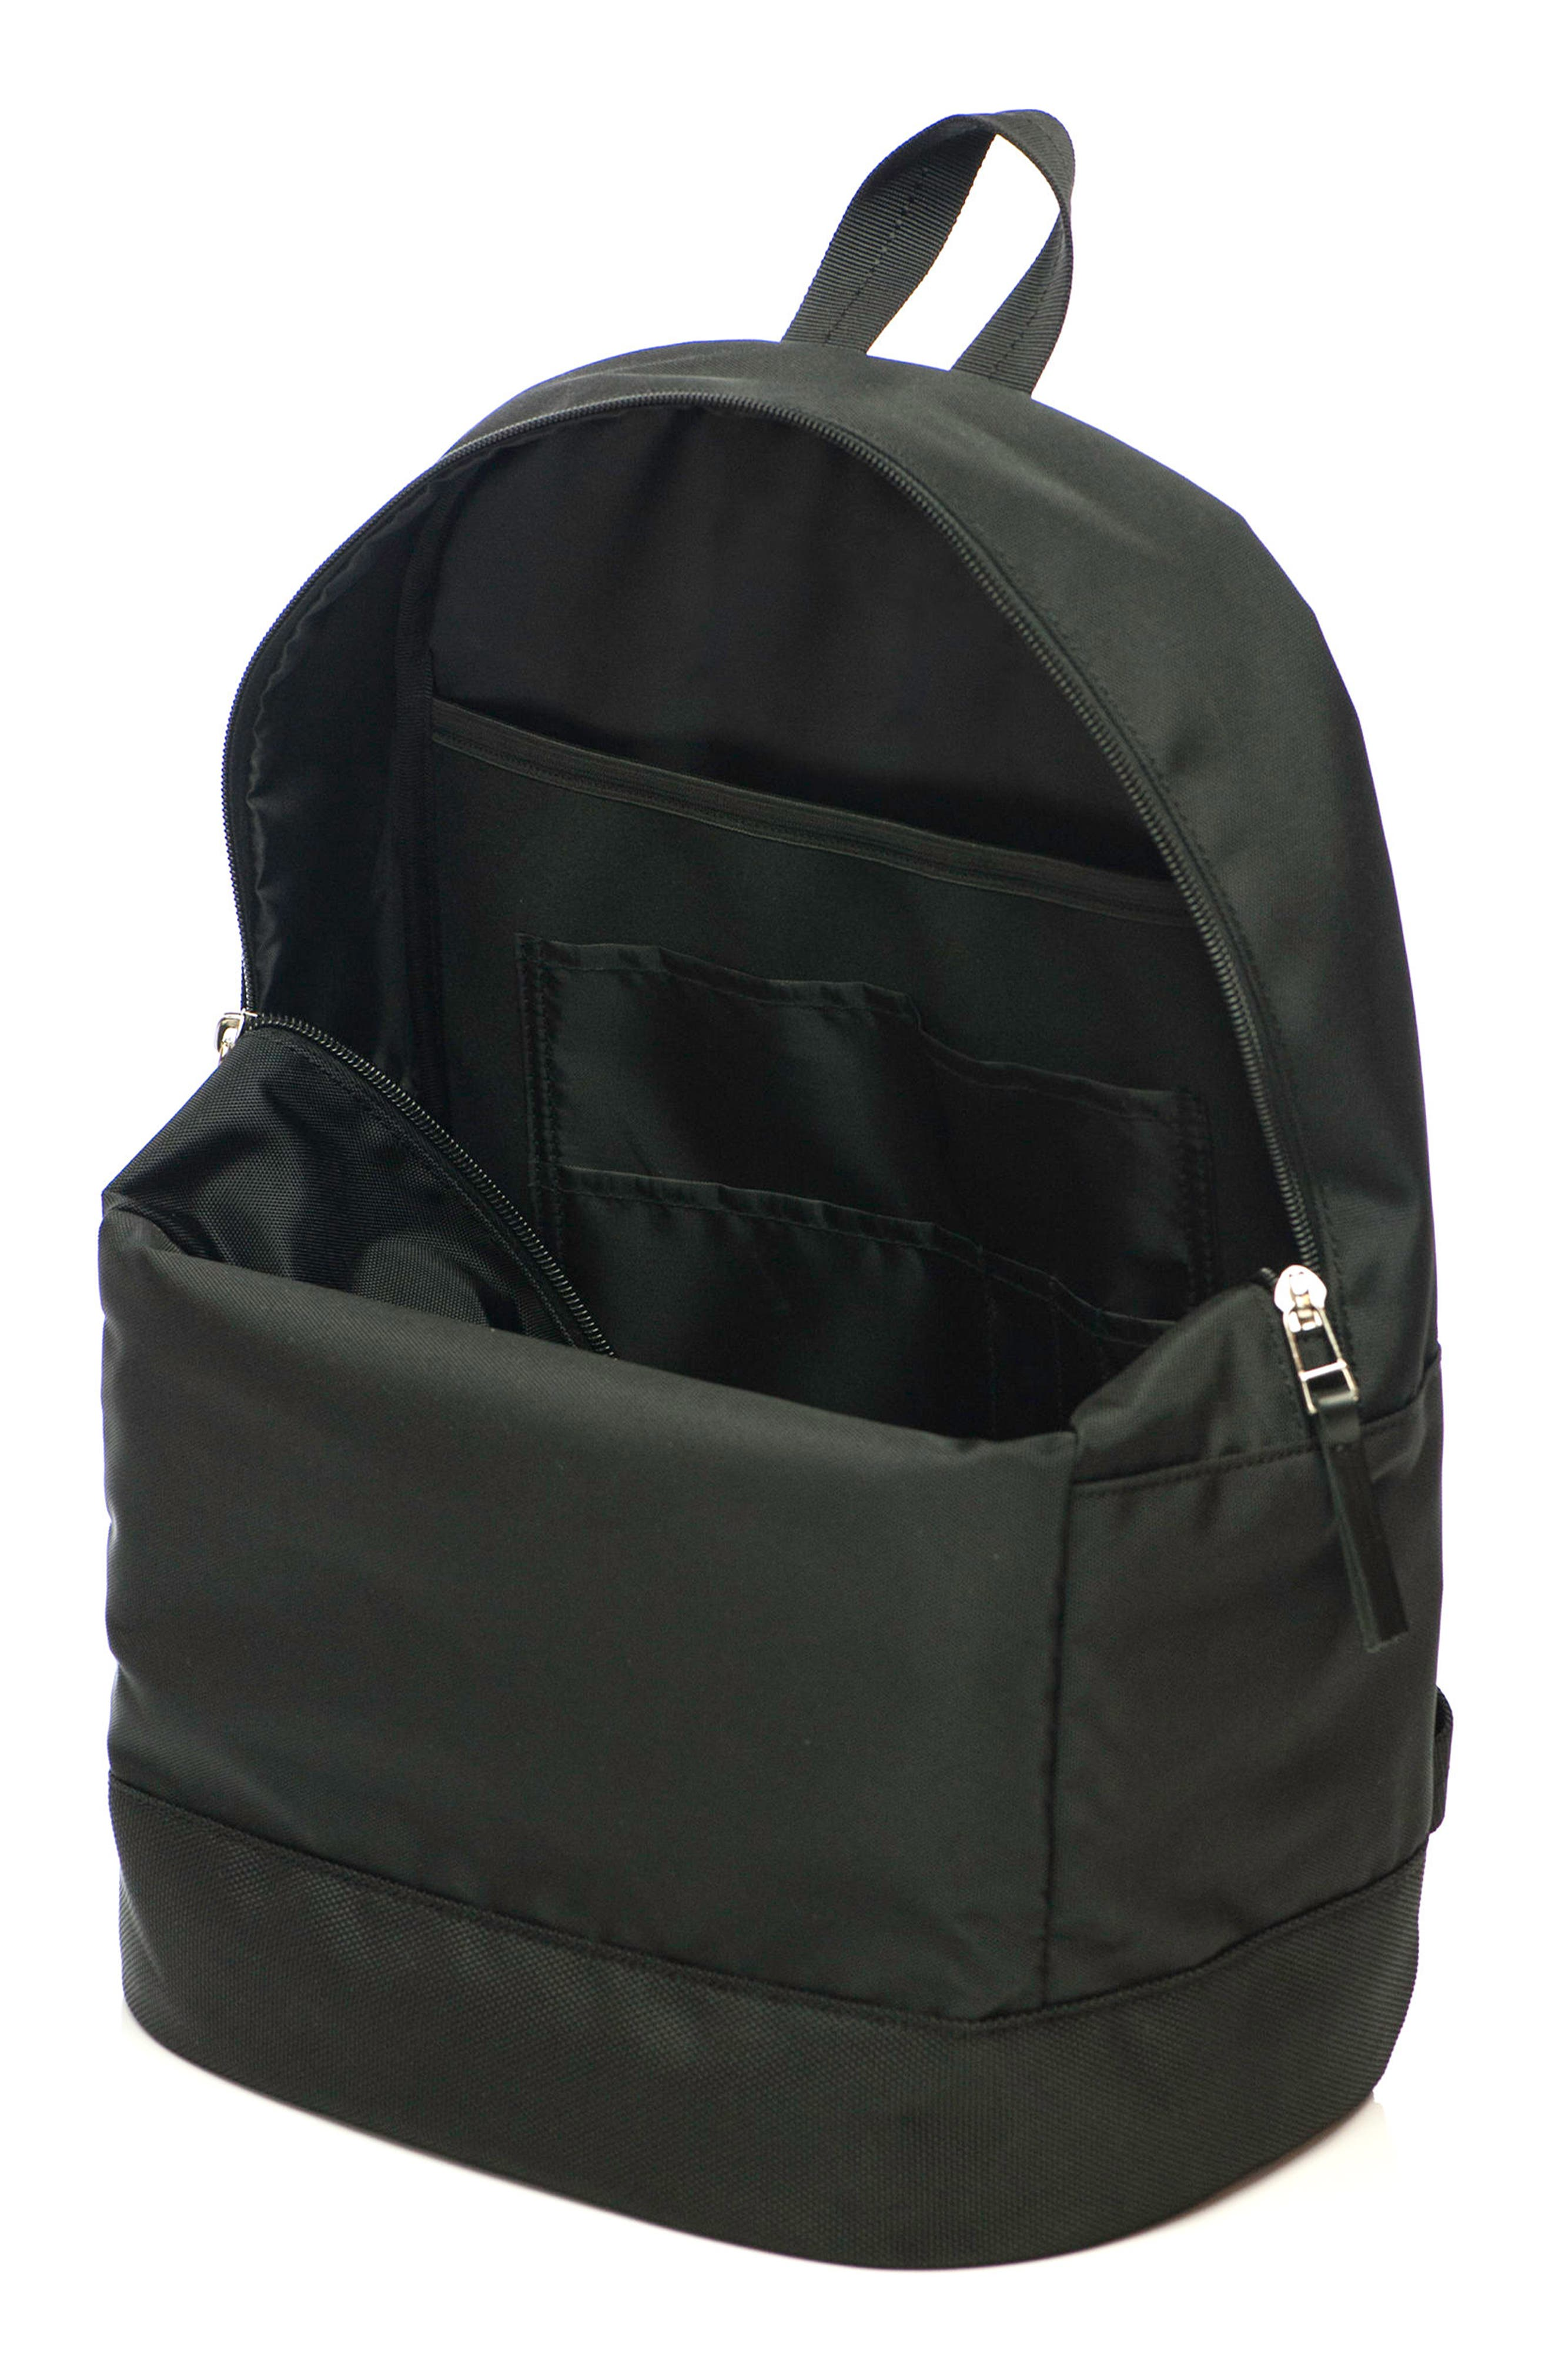 Tomcat Backpack,                             Alternate thumbnail 4, color,                             001